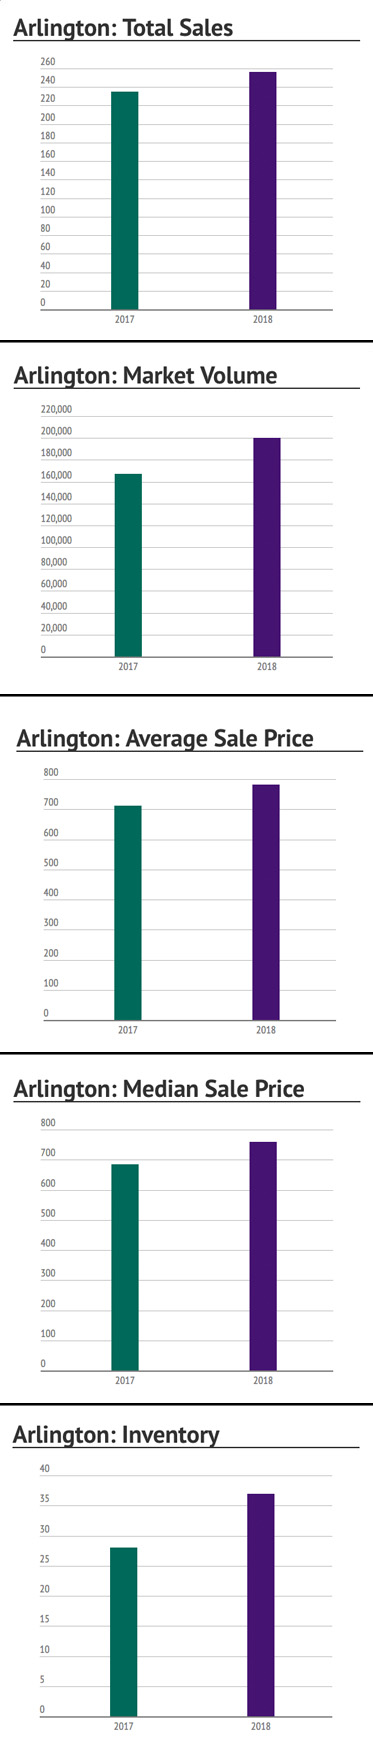 Arlington, MA: First Half of 2018 Market Summary